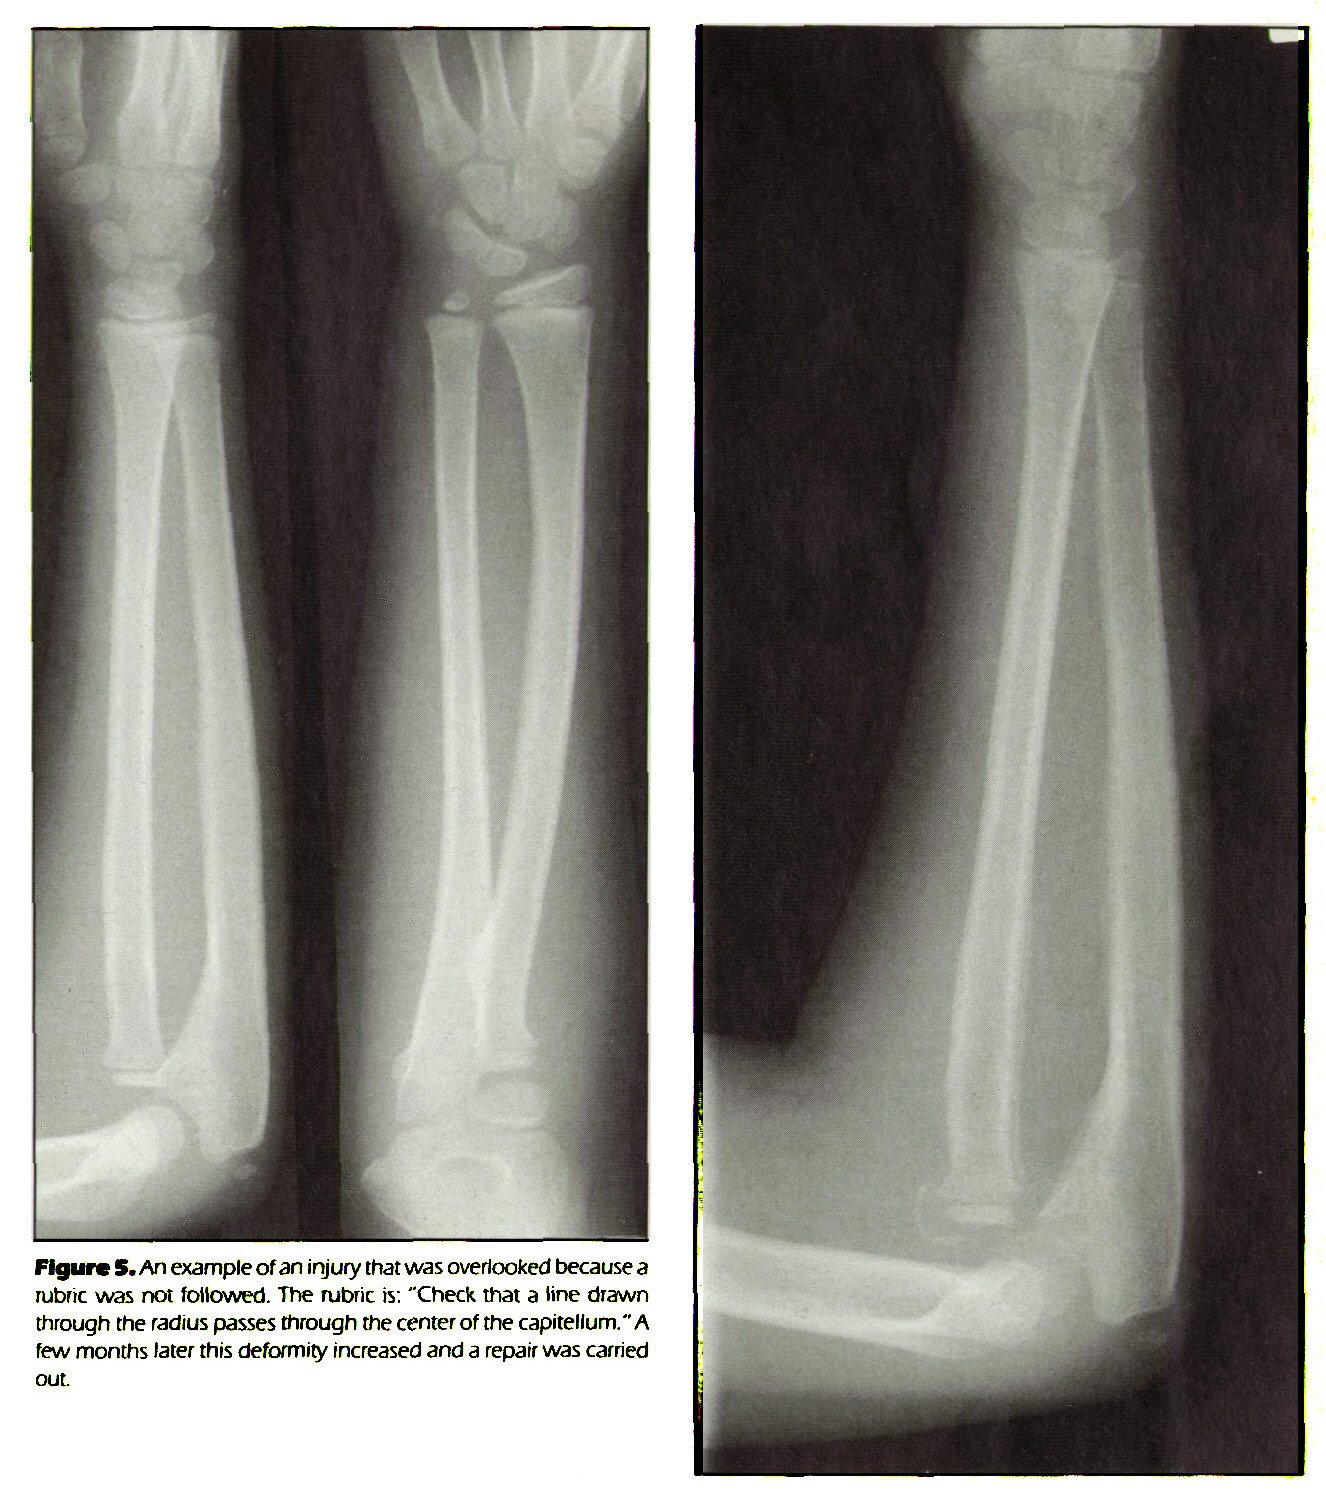 """Figure 5. An example of an injury that was overlooked because a rubric was not followed. The rubric is: """"Check that a tine drawn through the radius passes through the center of the capitellum.""""A few months later this deformity increased and a repair was carried out."""